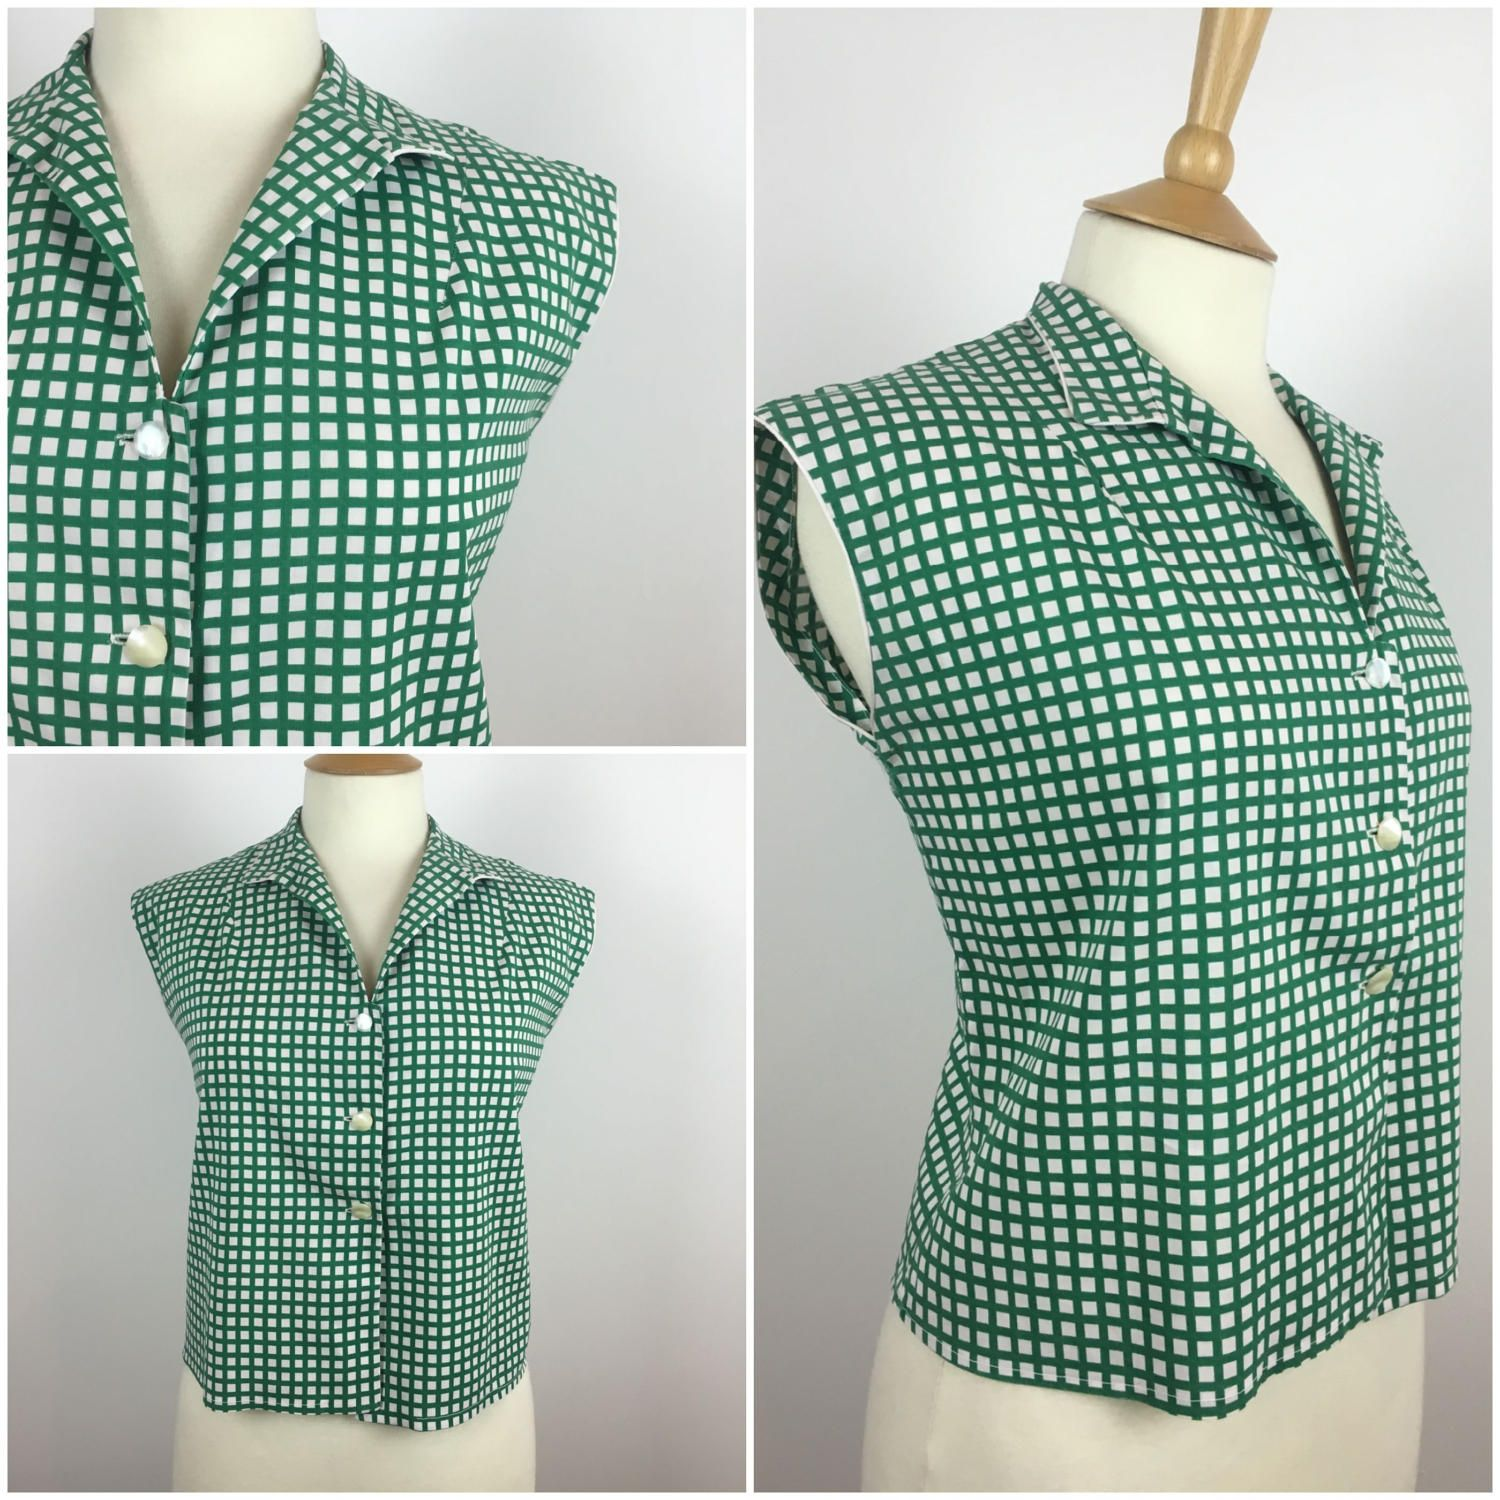 "Vintage 1950s Top - 50s Green Checked Cotton blouse - Sleeveless Shirt - Button Down Blouse - Pinup Rockabilly - UK 12-14 Medium Bust 38"" by Marneys on Etsy"